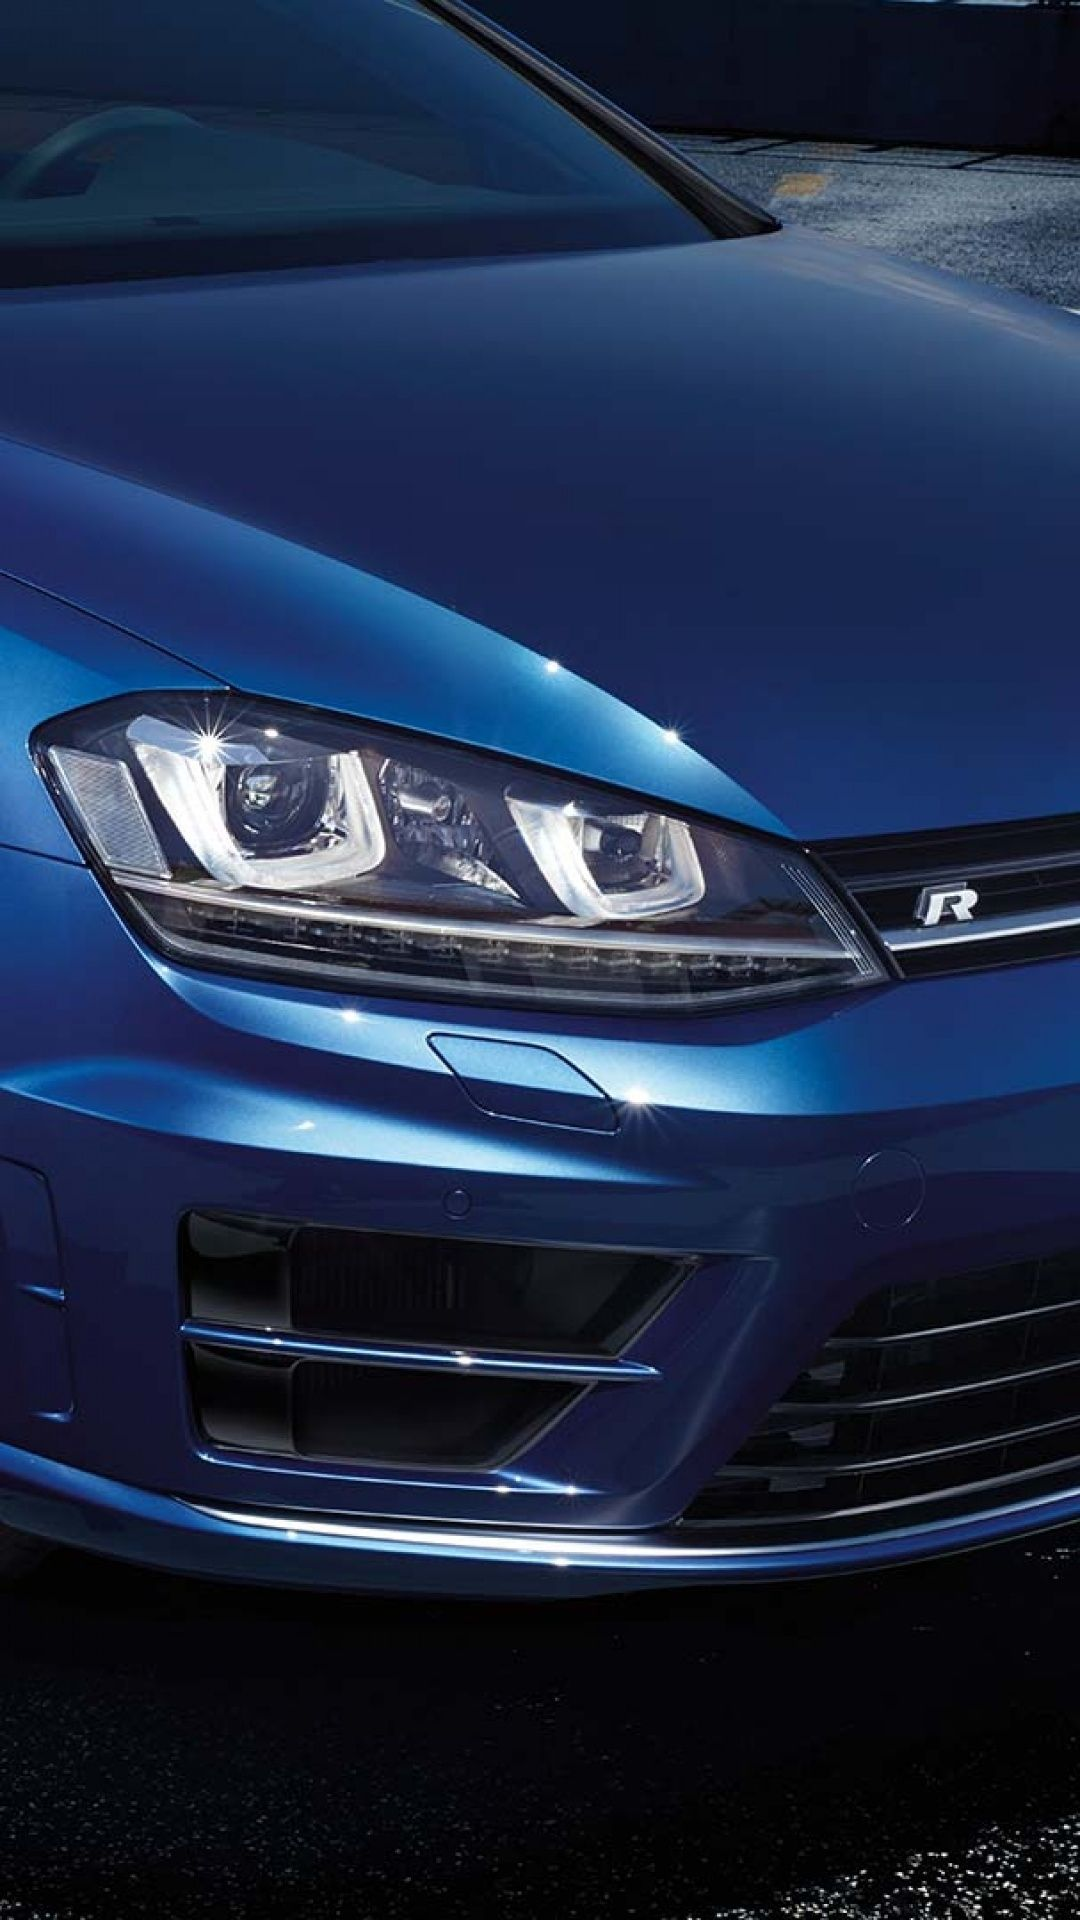 Golf R Wallpaper For Iphone Download Best Golf R Wallpaper For